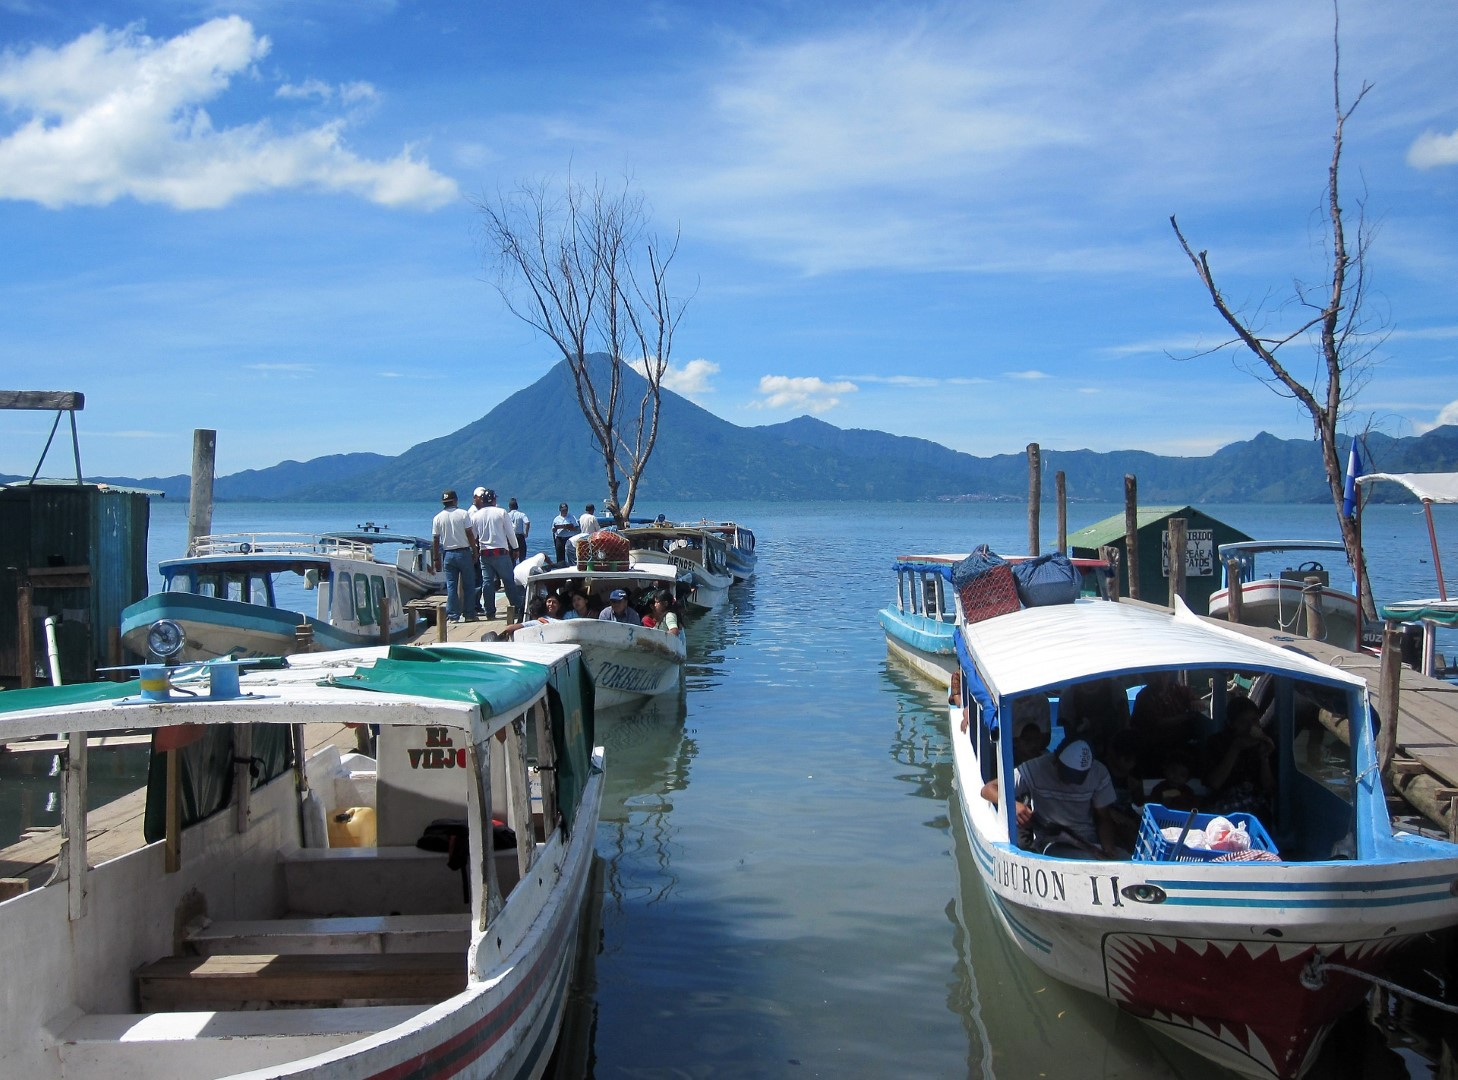 Taxi boats on Lake Atitlan, Guatemala